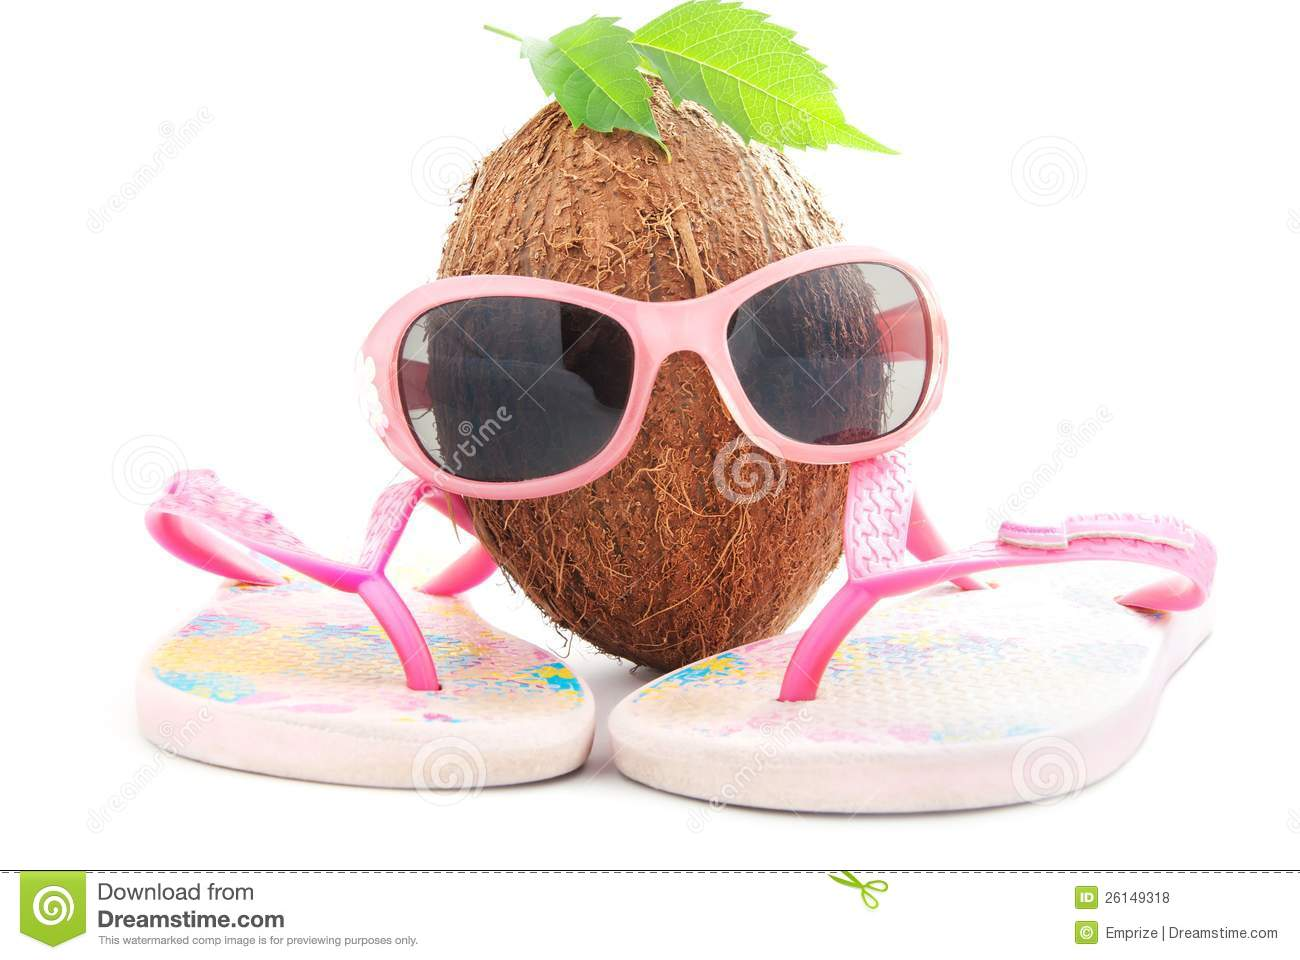 31ab527dc1954 Coconut concept with sunglasses and beachwear royalty free stock photos